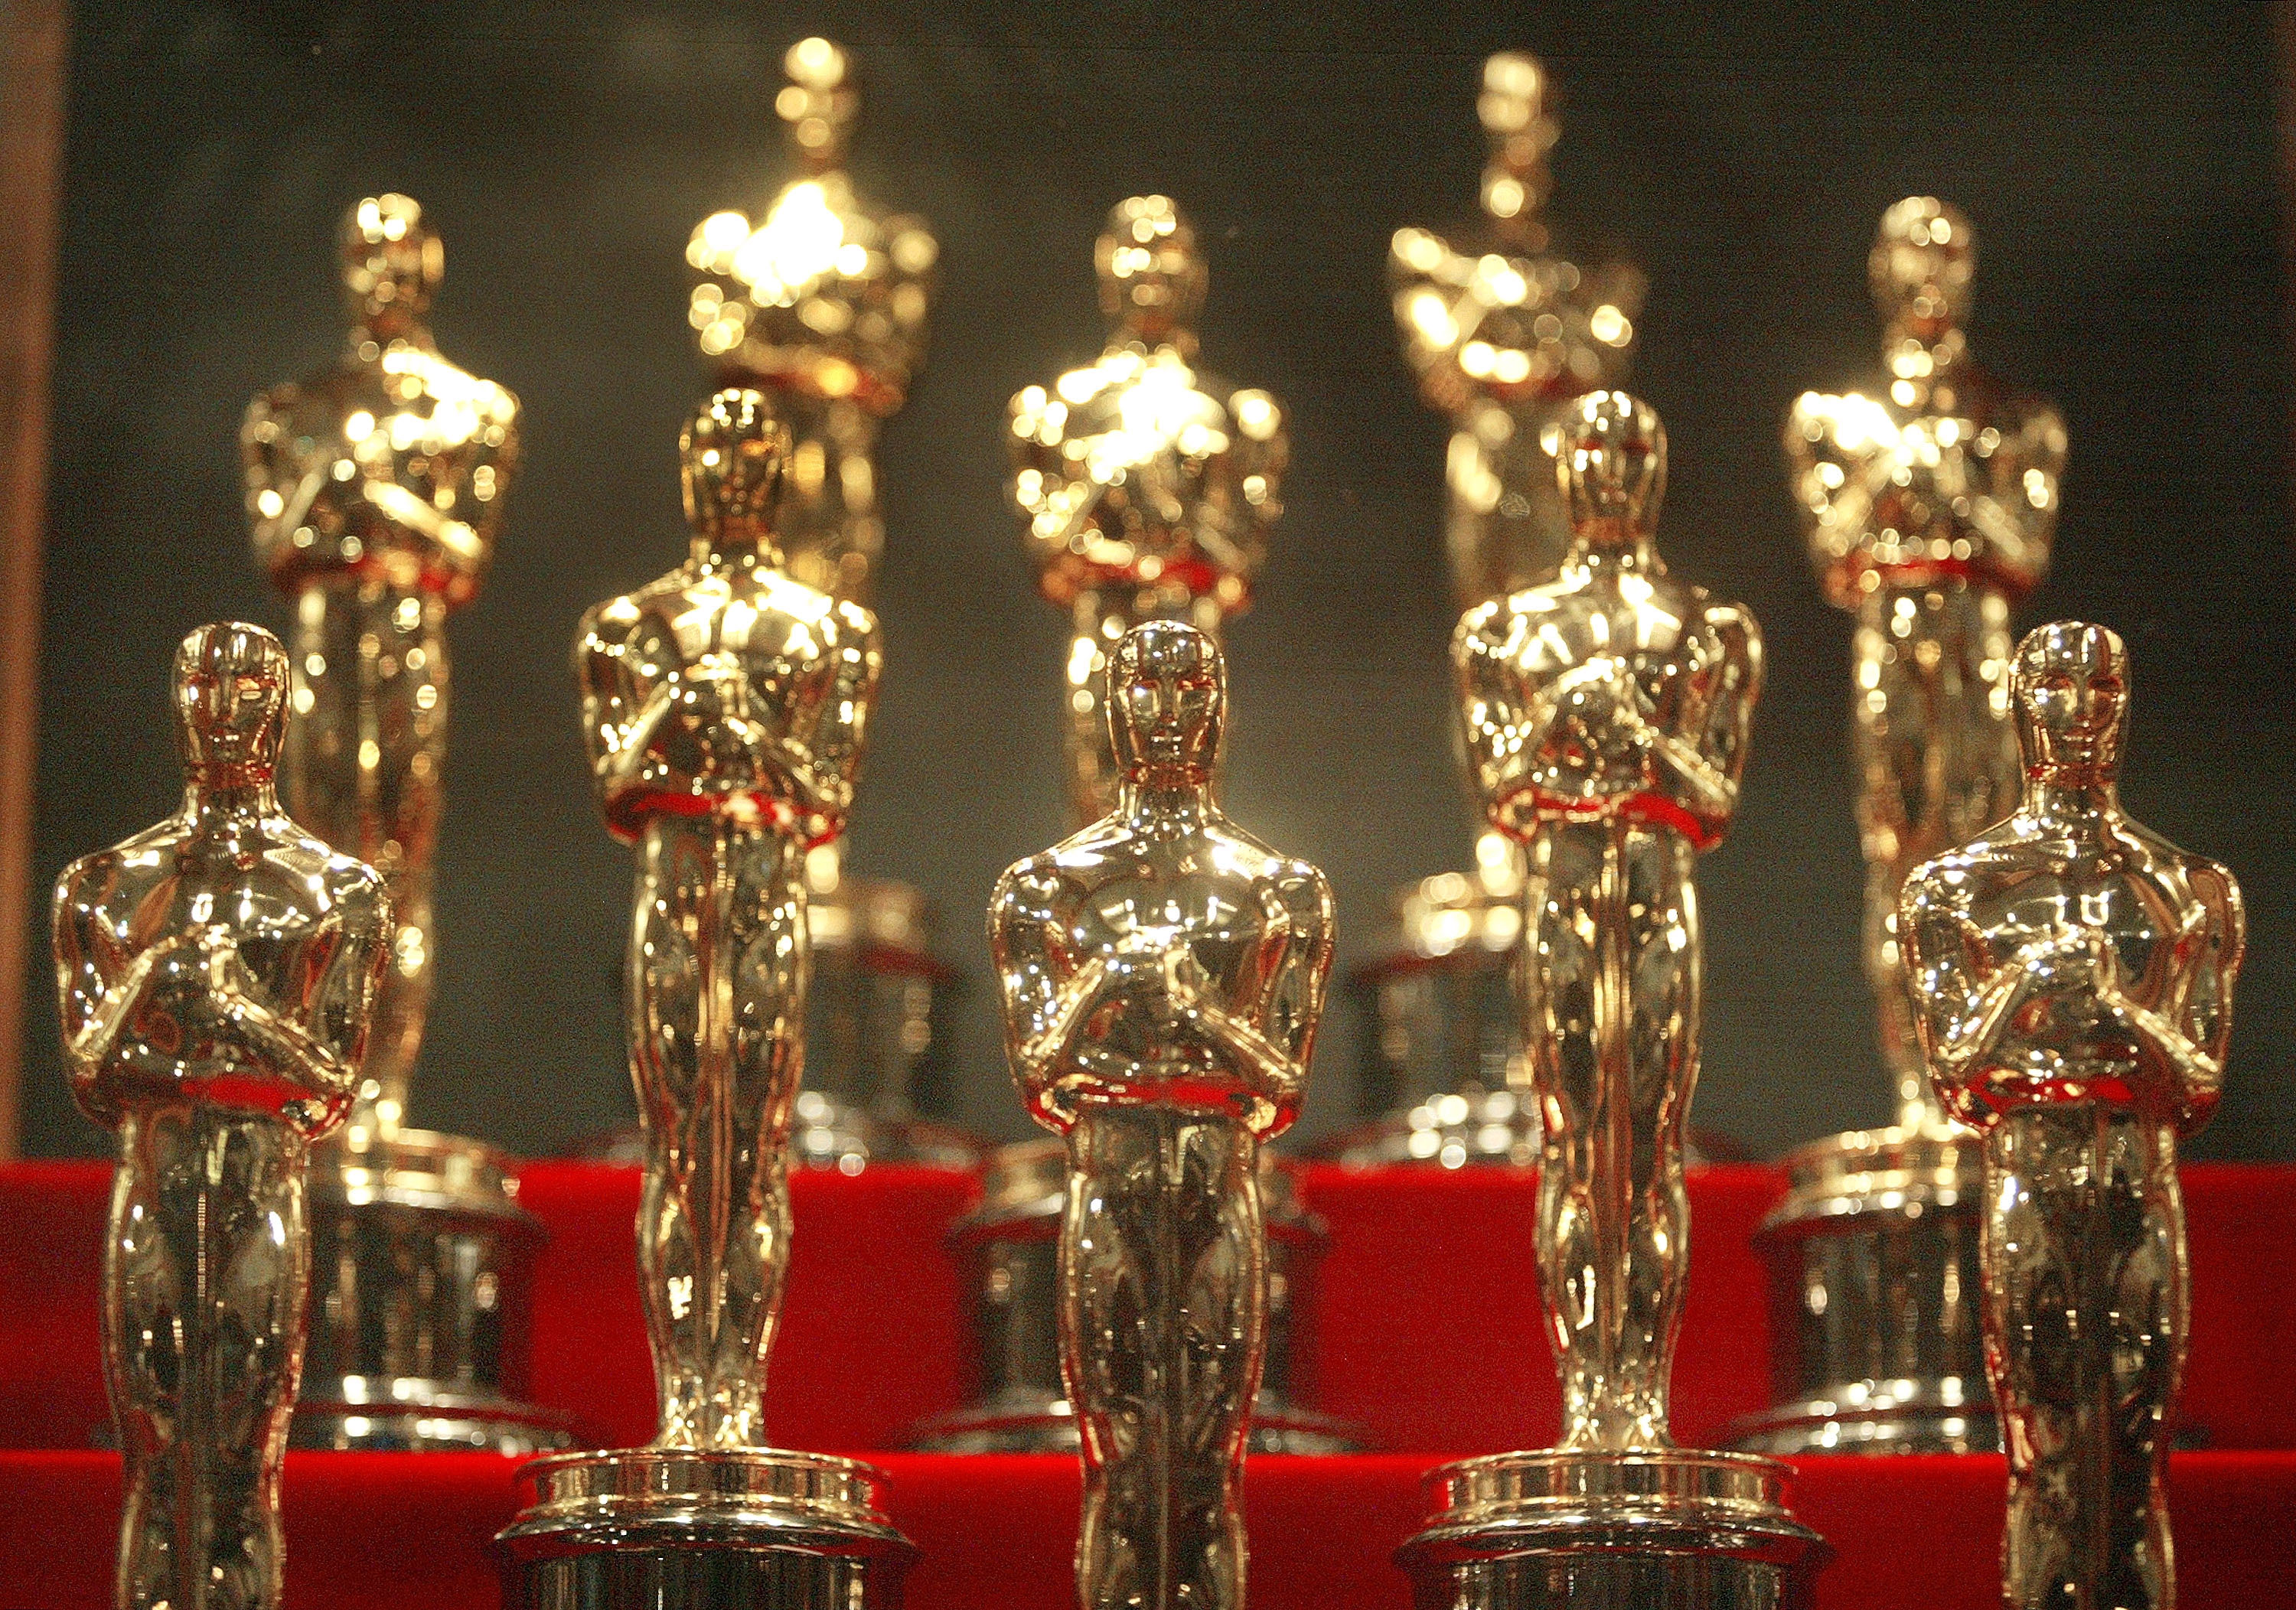 Oscar statuettes displayed at the Museum of Science and Industry in Chicago, Illinois.